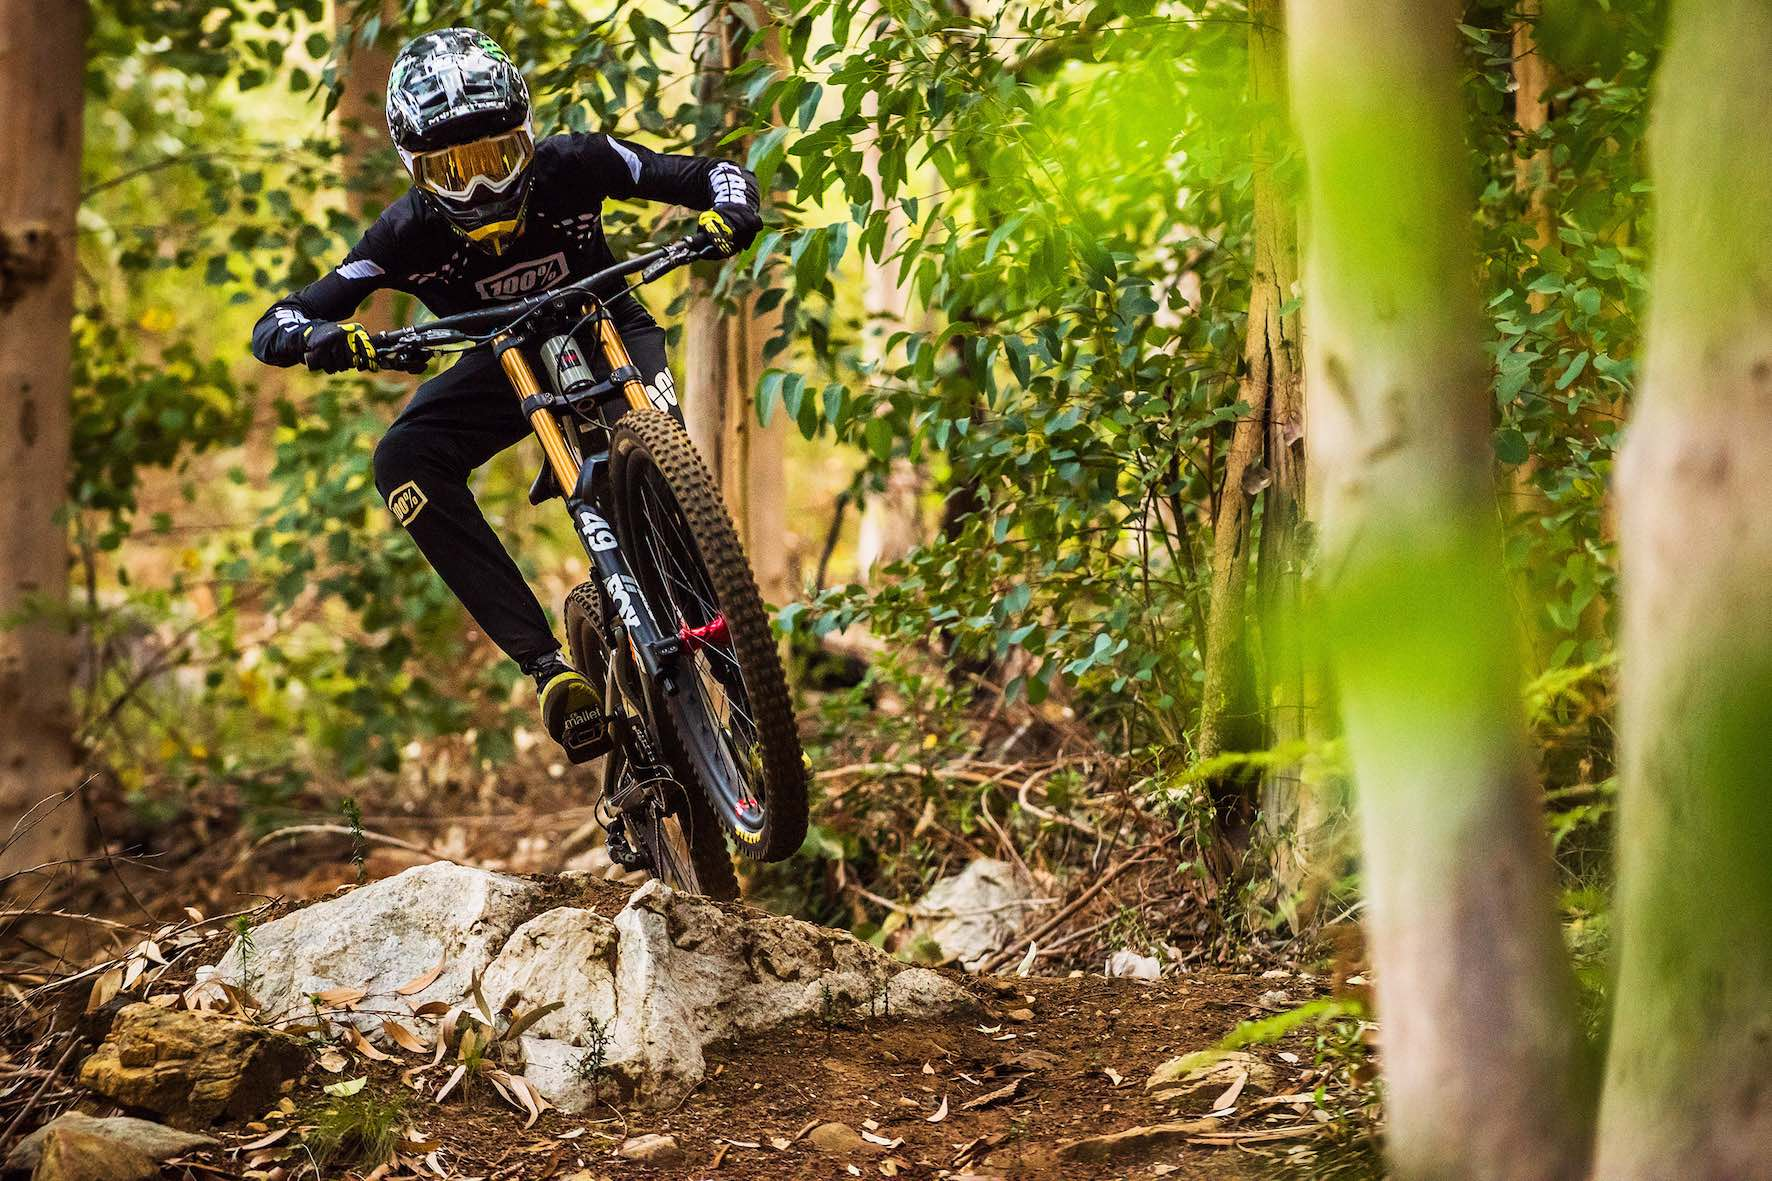 Downhill MTBer, Ike Klaassen joins the Monster Army Family